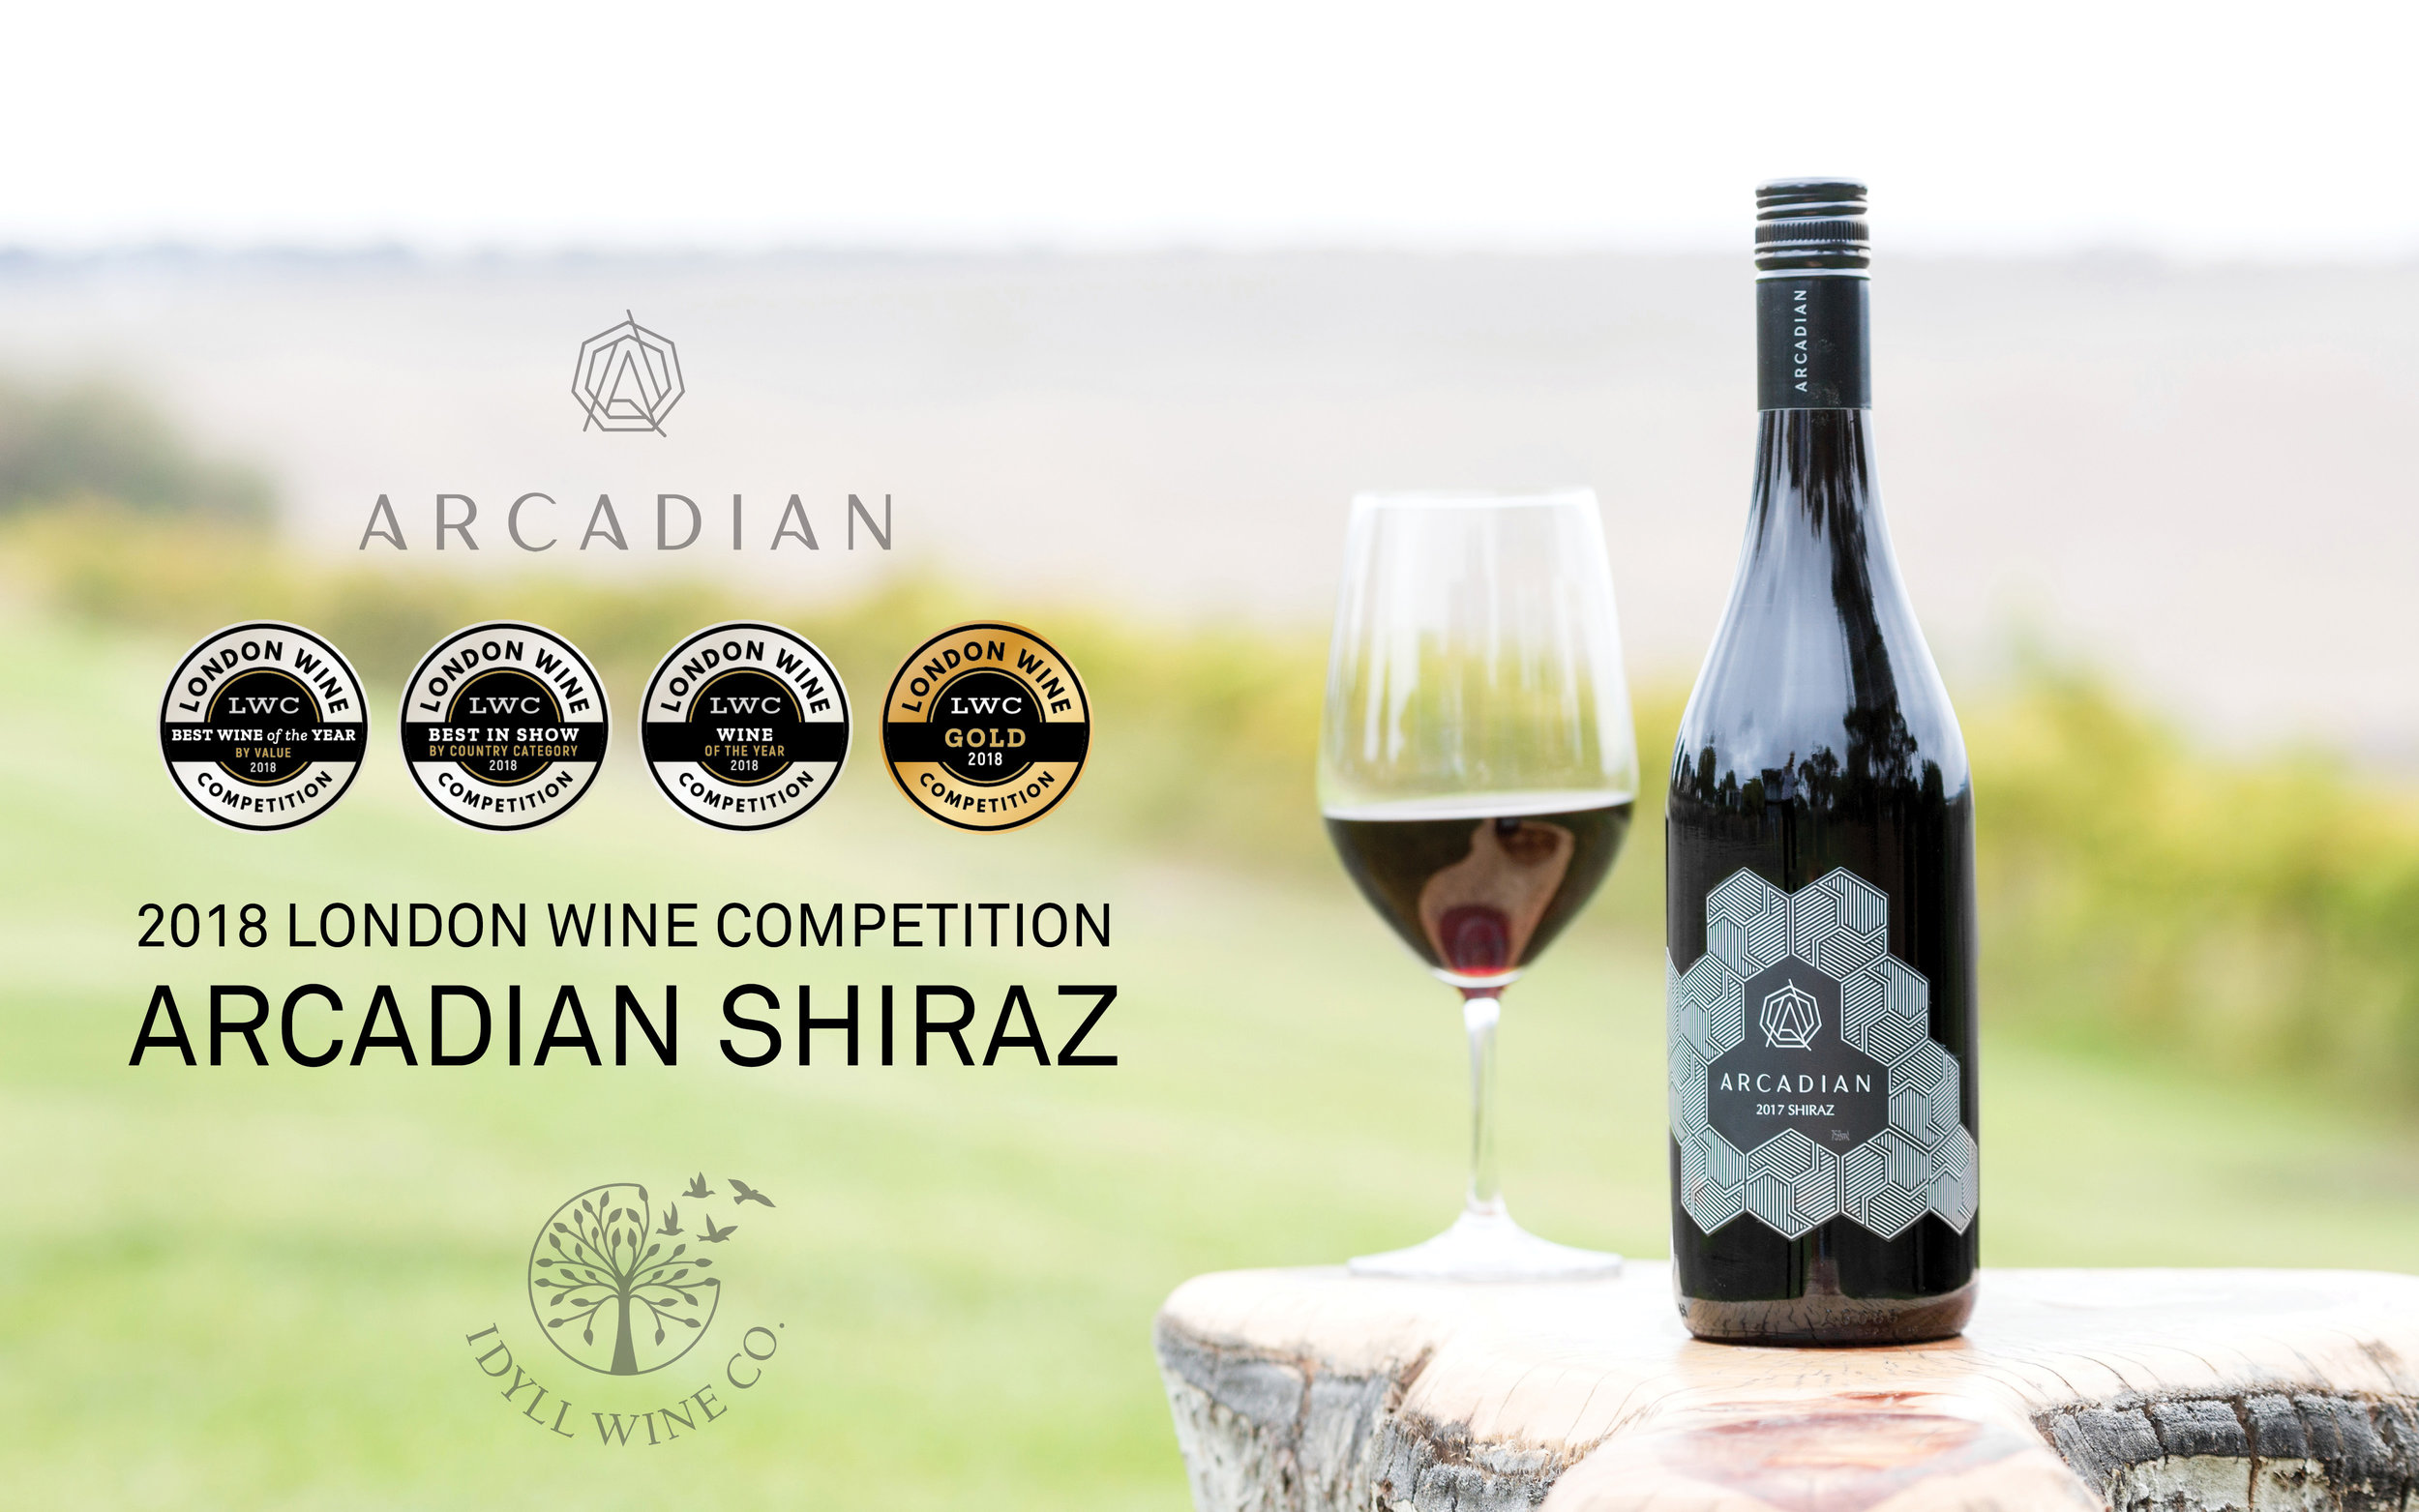 Arcadian Shiraz Idyll Wine Co_FB_post.jpg